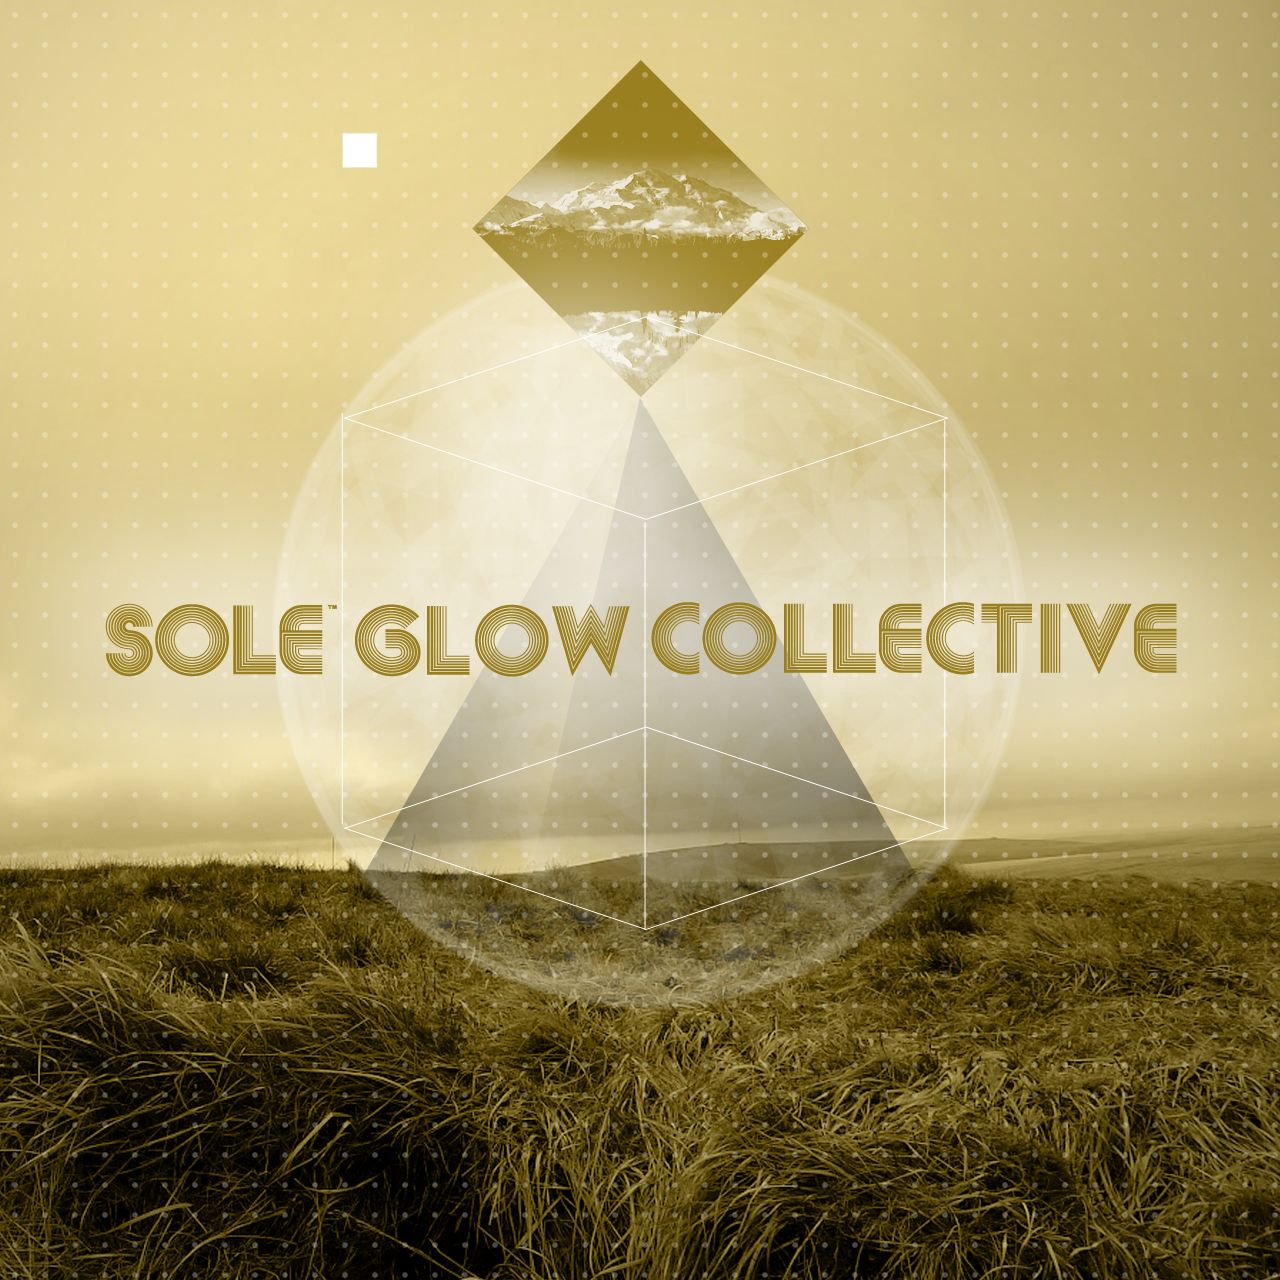 Free Download: Sole Glow Collective – Compilation Vol. 1 (2012)